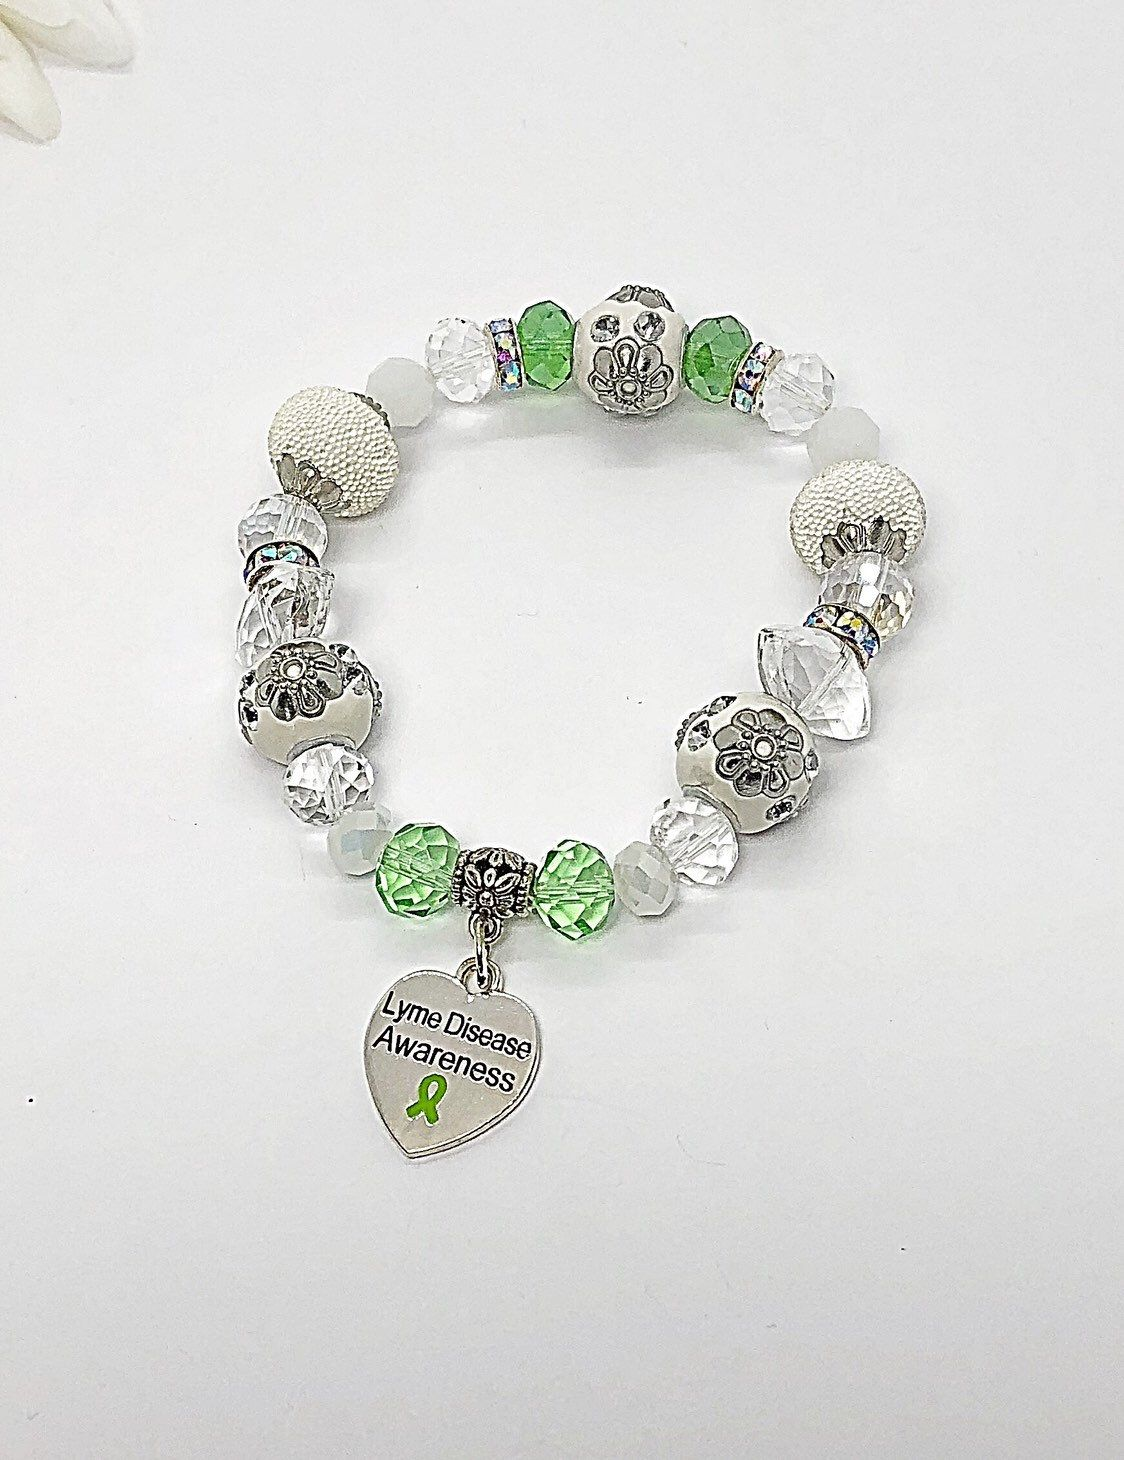 Excited To Share This Item From My Etsy Lyme Disease Awareness Bracelet